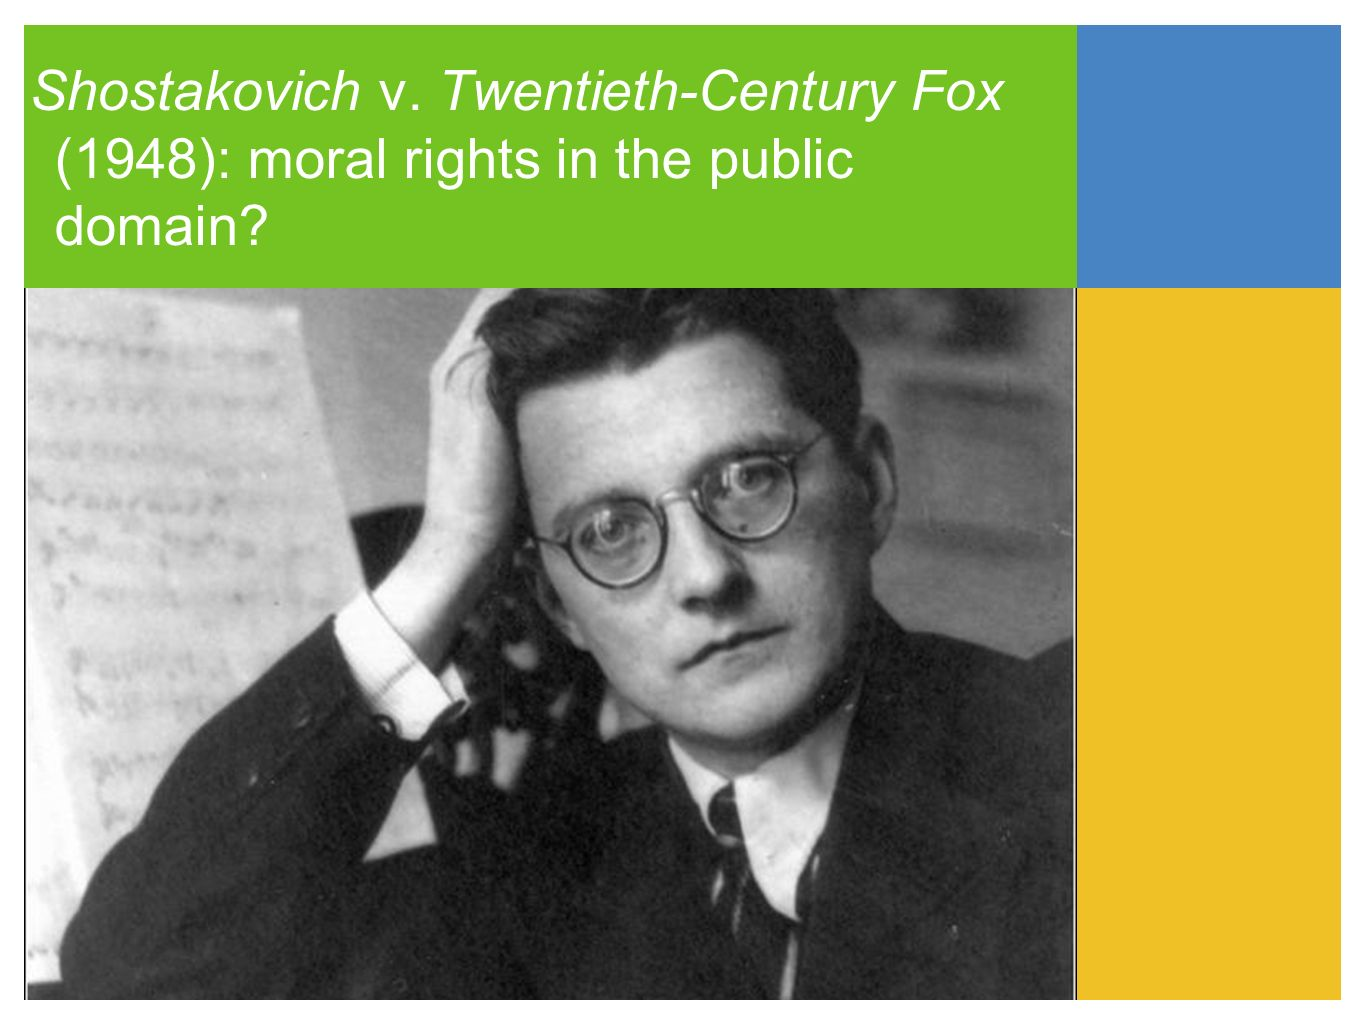 Shostakovich (1948) Conceivably, under the doctrine of Moral Right the court could in a proper case, prevent the use of a composition or work, in the public domain, in such a manner as would be violative of the author s rights.